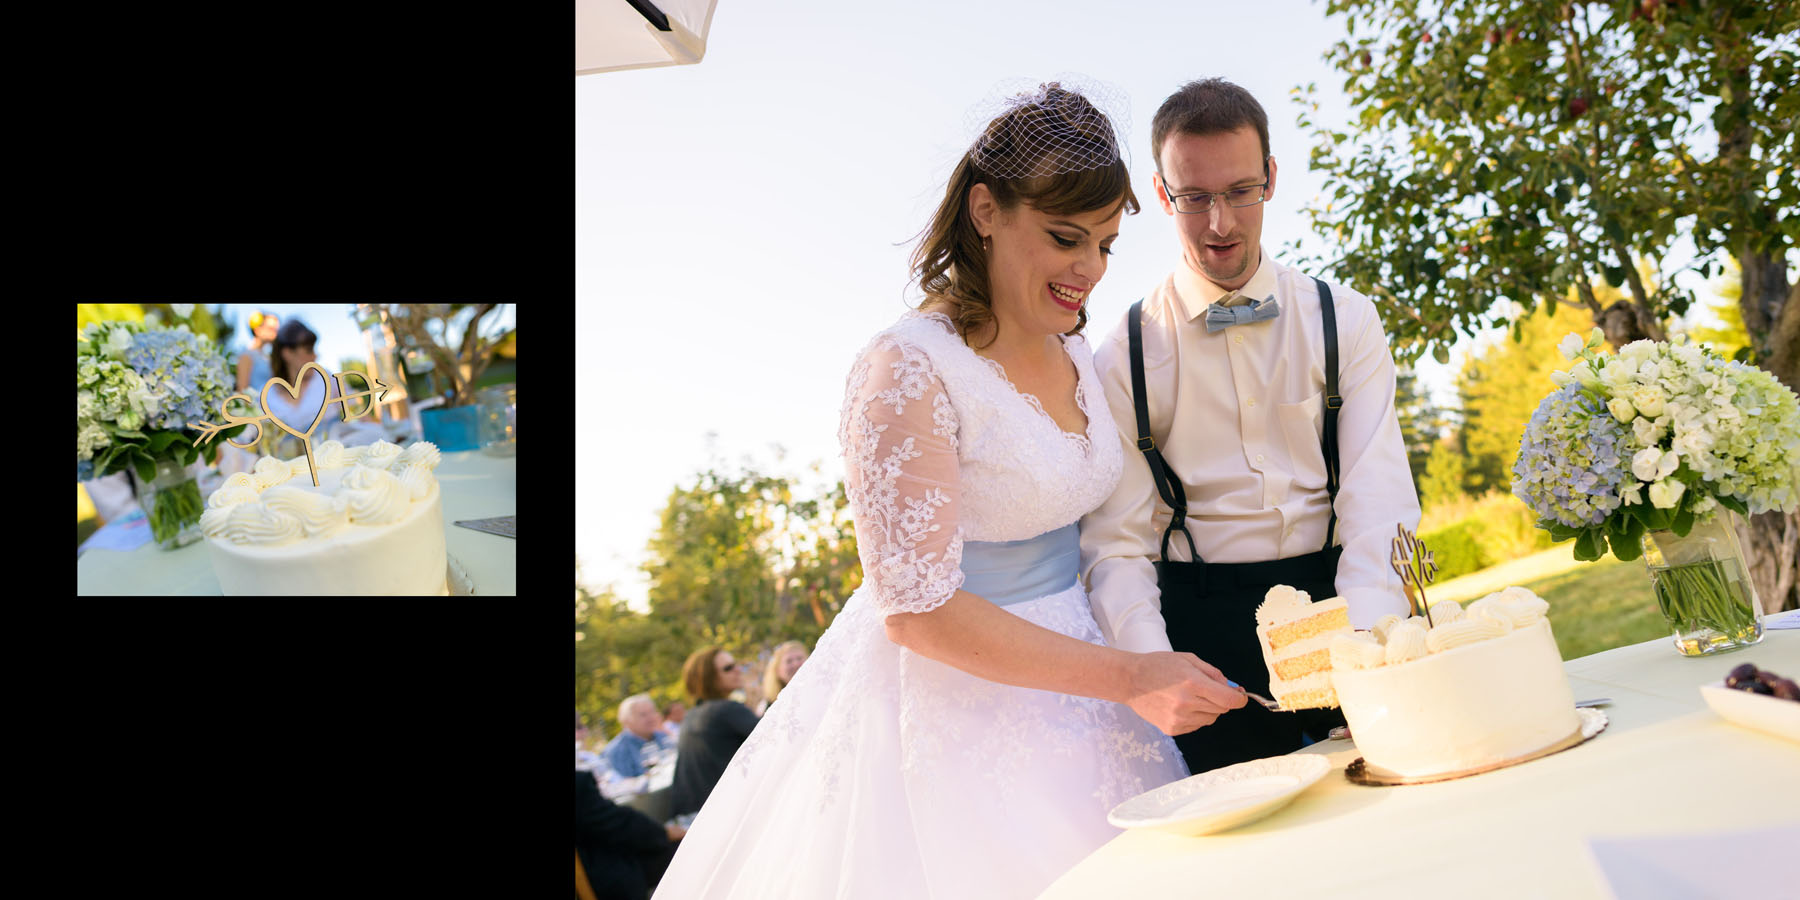 Cutting the cake - Private Estate wedding in Sebastopol, CA - by Bay Area wedding photographer Chris Schmauch